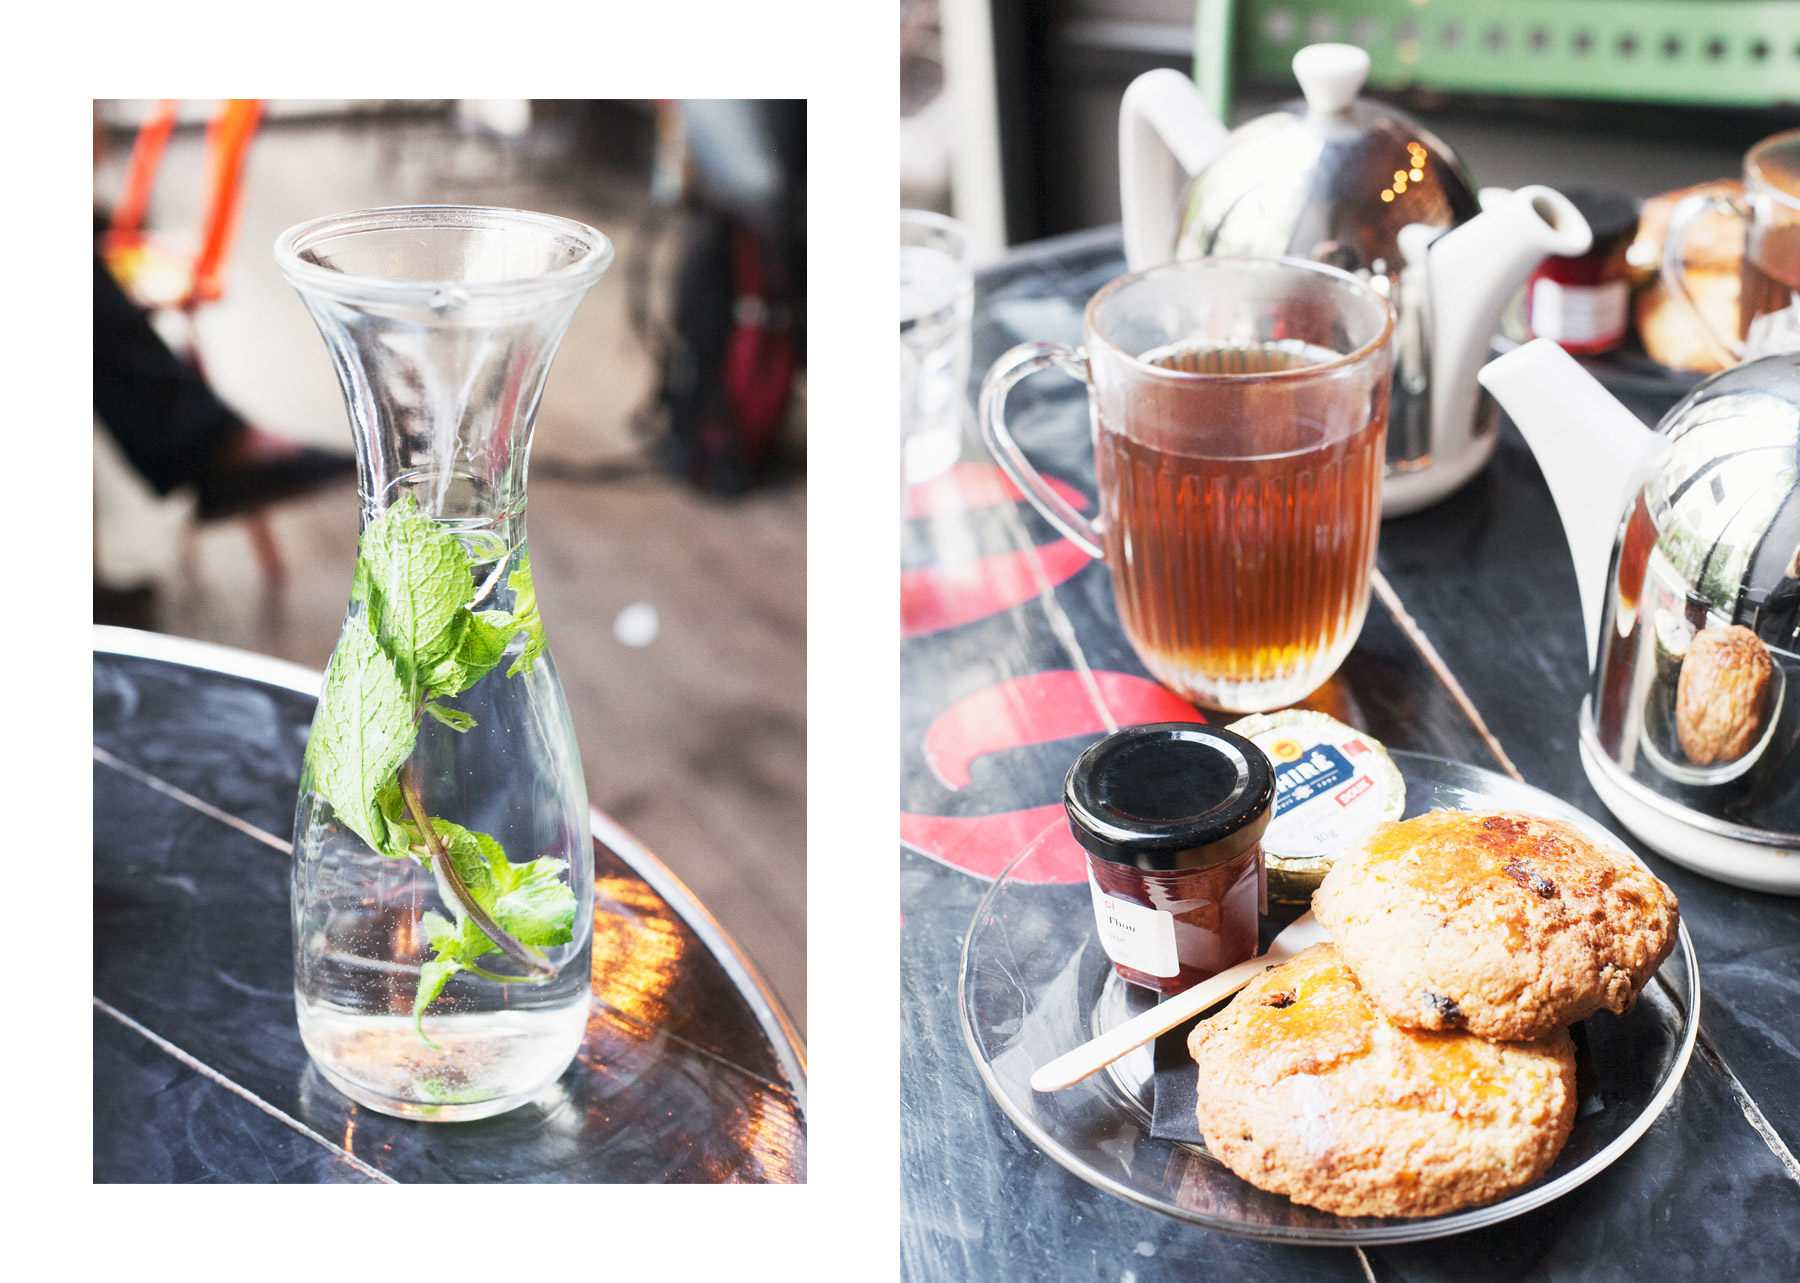 Tea and scones at Merci by Carin Olsson (Paris in Four Months)